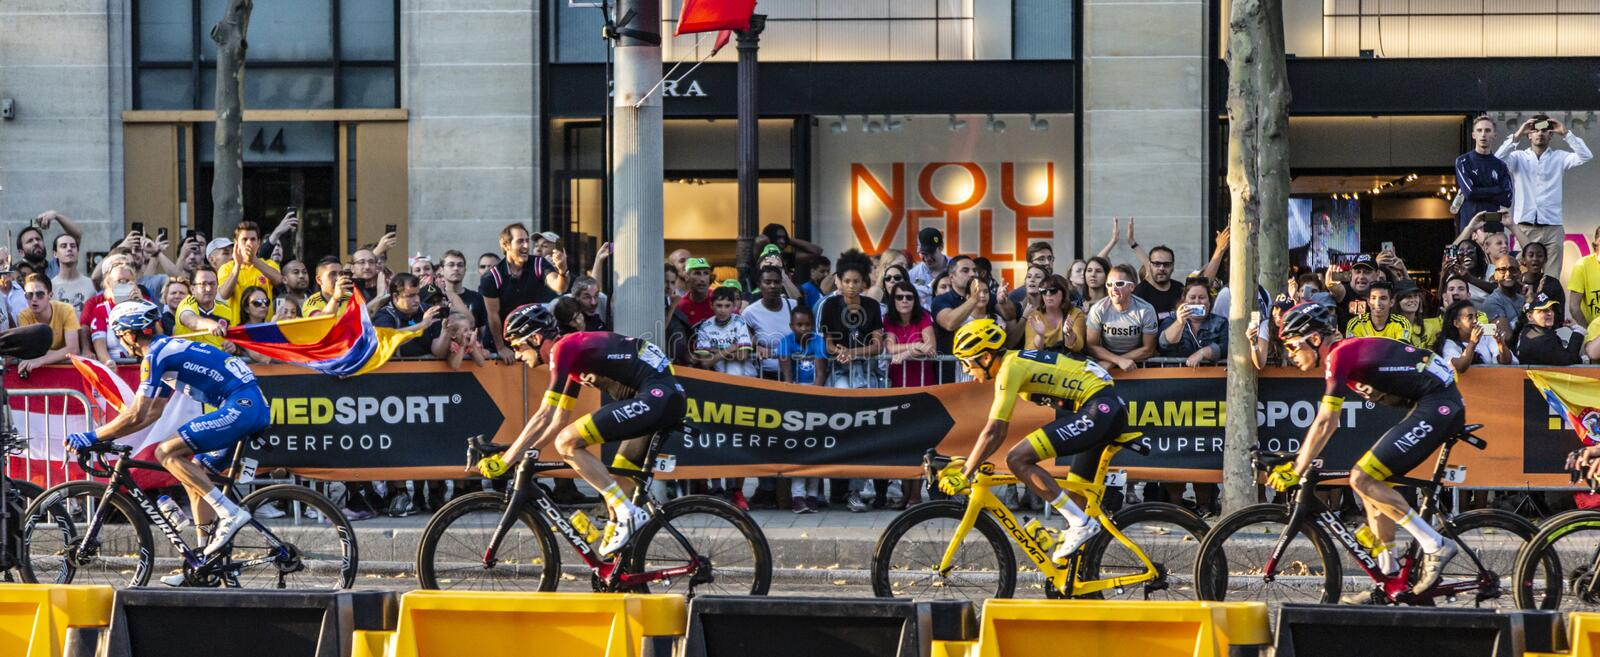 Egan Bernal der Sieger von Tour de France 2019 in Paris auf Champs-Elysees in Paris stockbilder